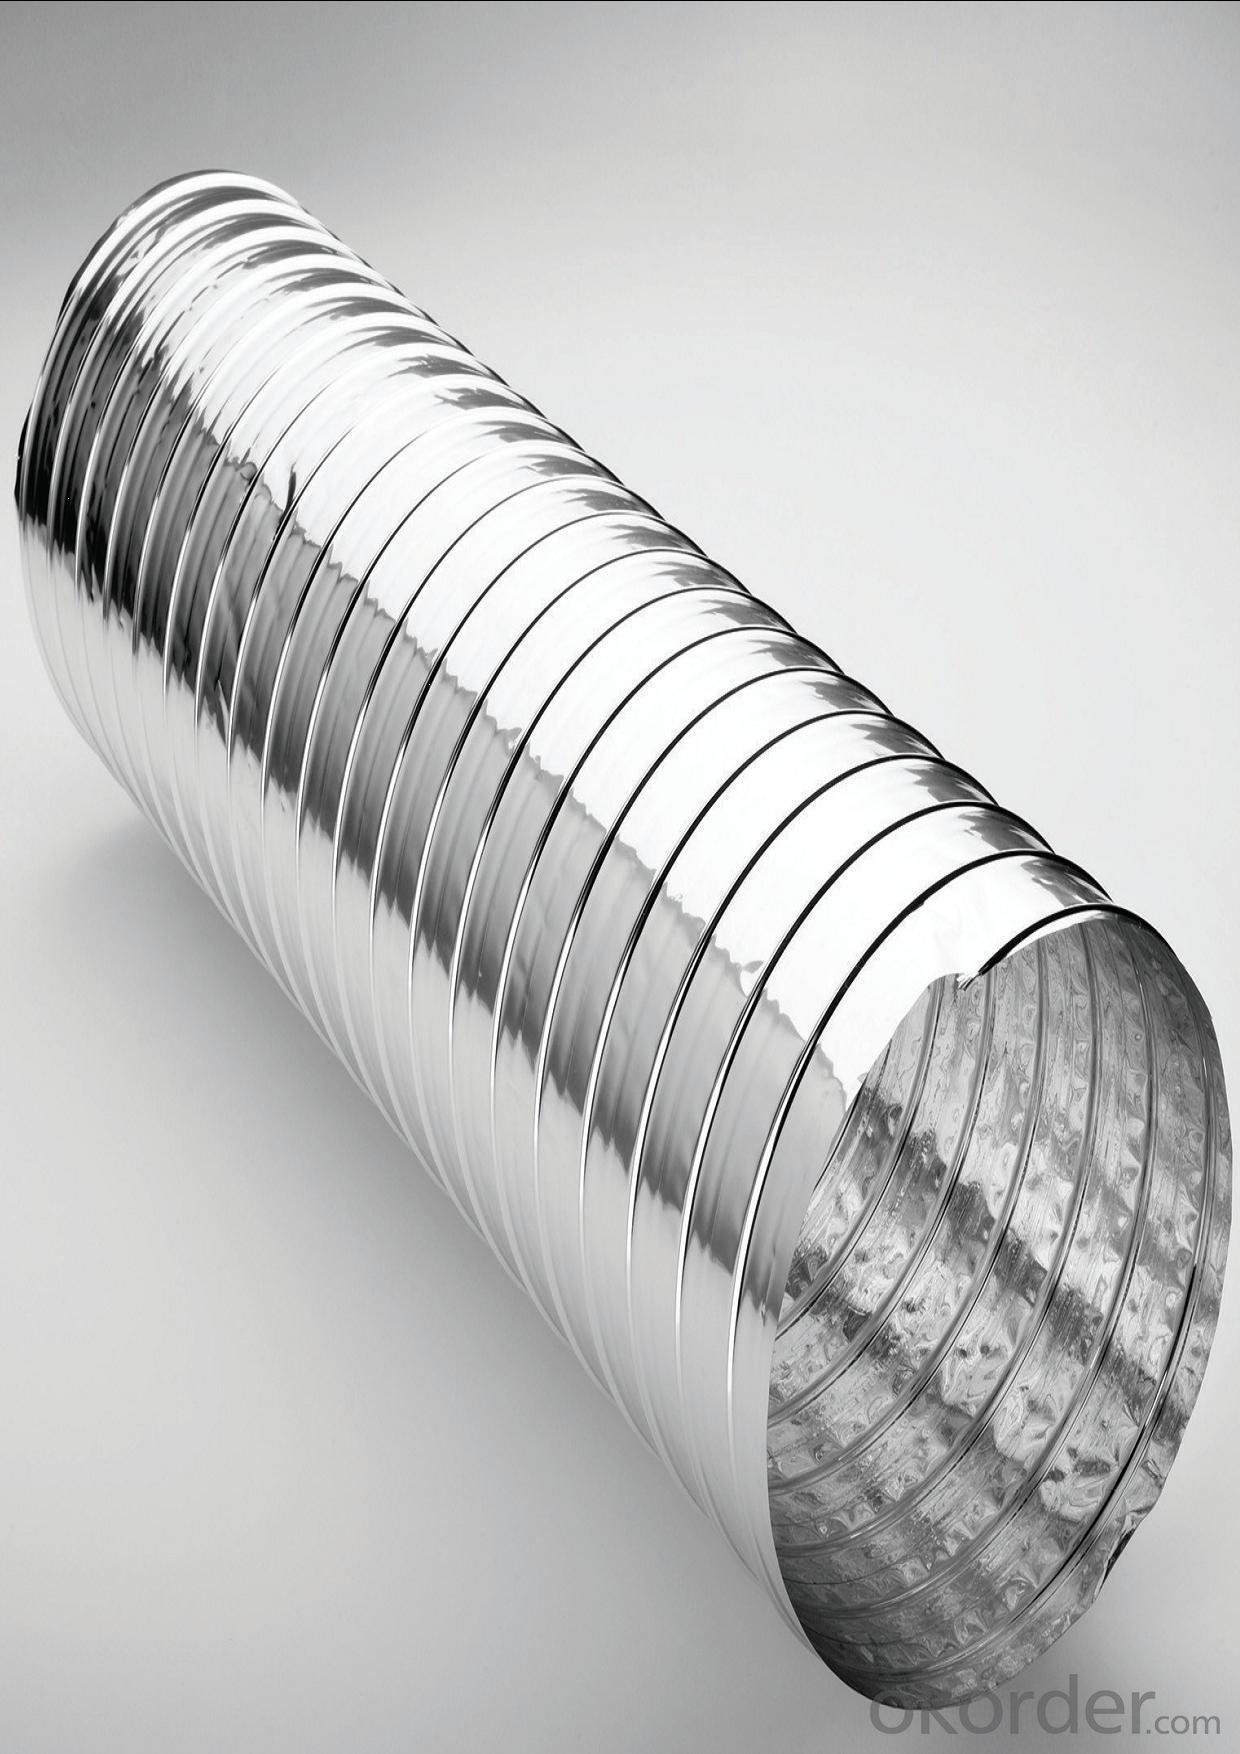 Non-ininsulated Alum. Flexible Duct Insulated Flexible Duct